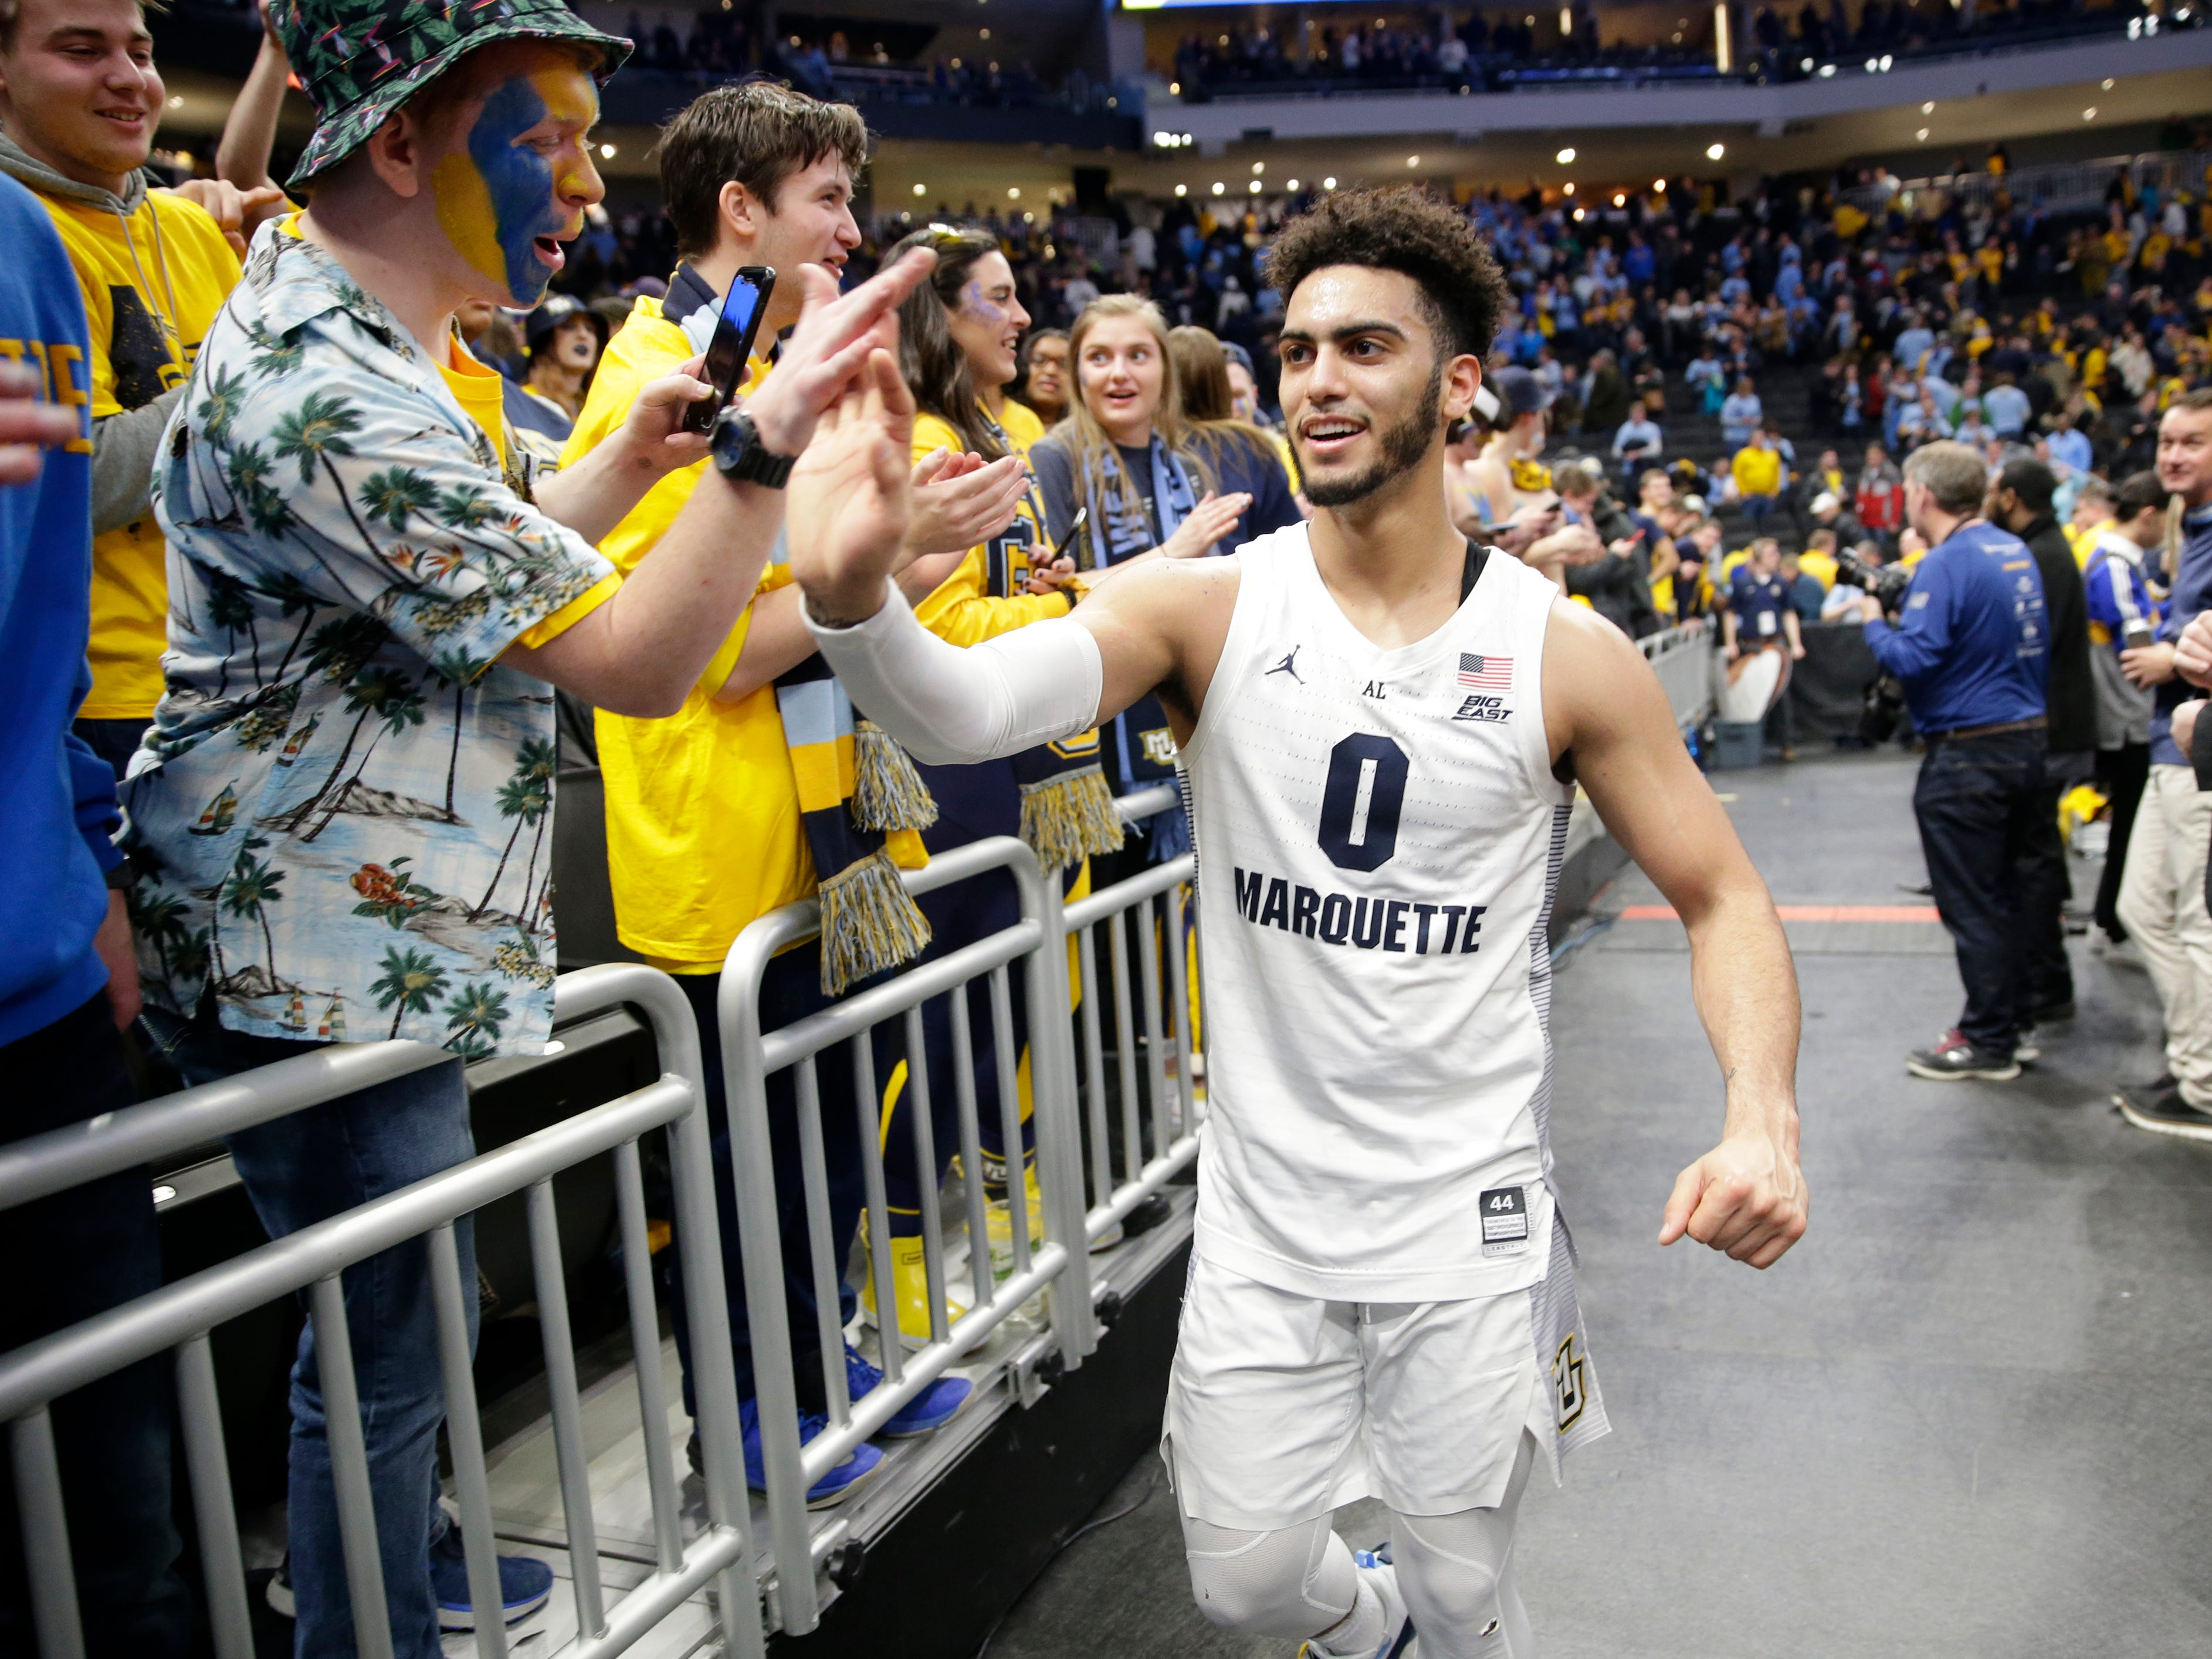 Marquette Golden Eagles guard Markus Howard celebrates with fans after Marquette's victory on Saturday.